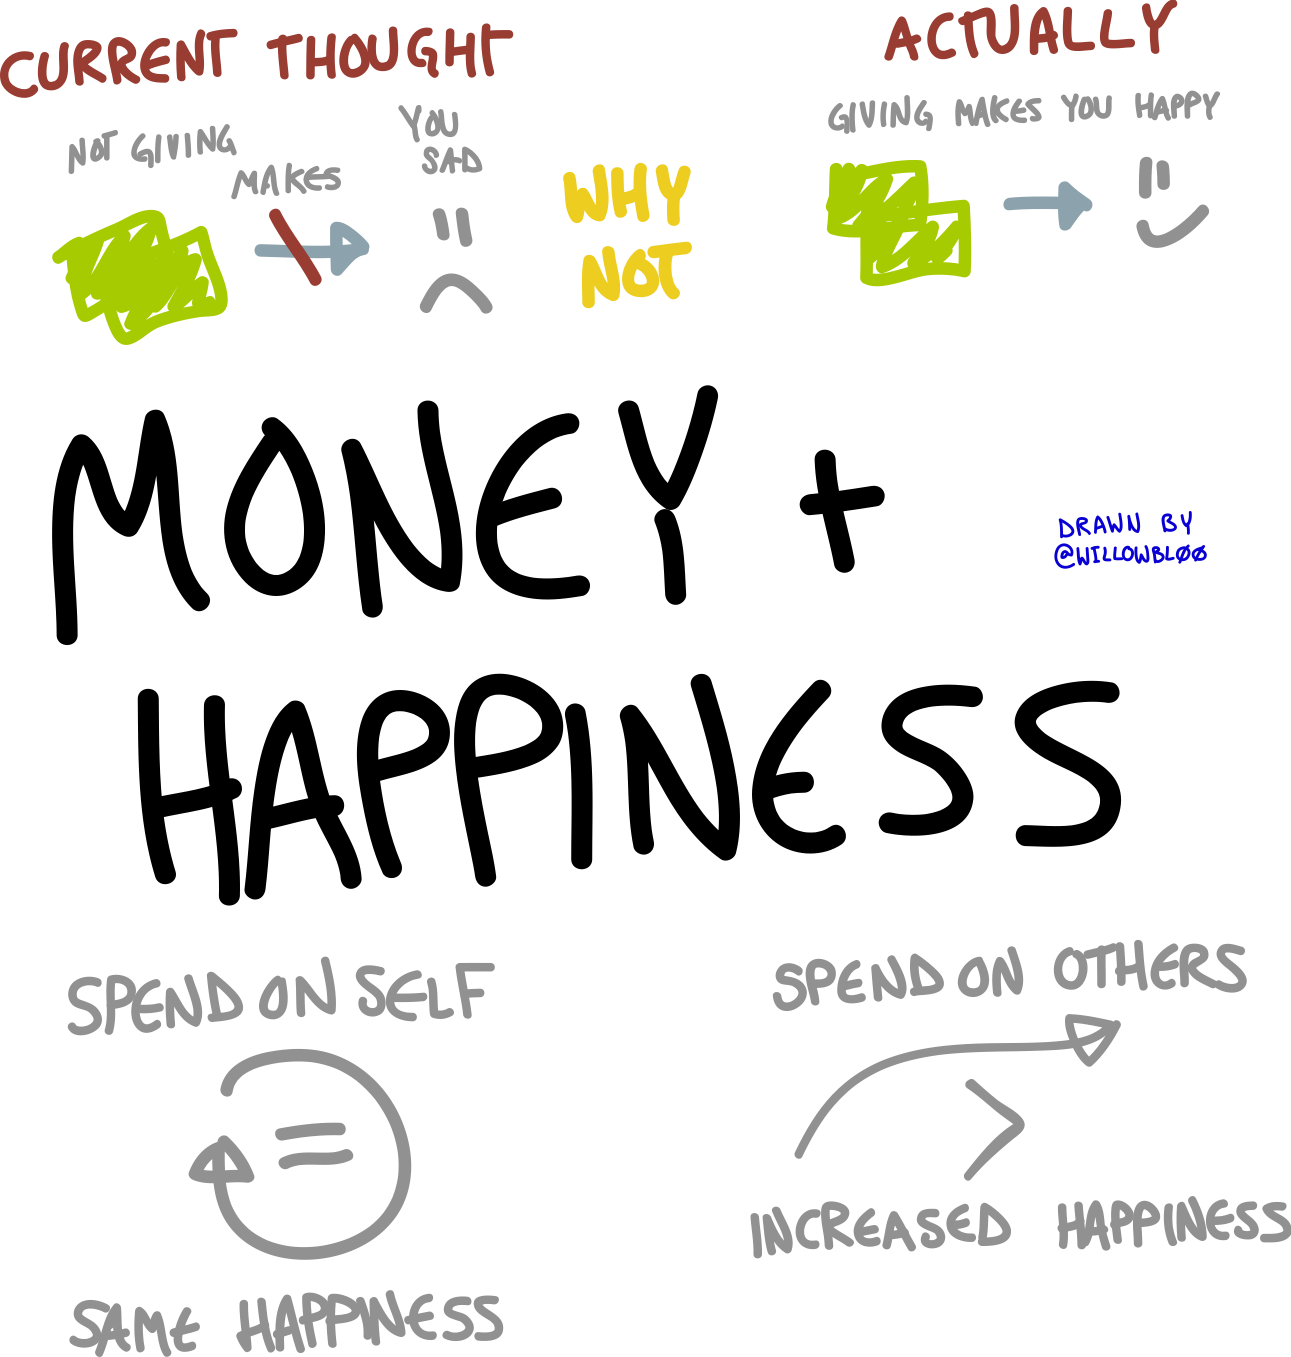 money happiness Money can buy happiness in some ways, and cause unhappiness in others, studies have shown that different types of wealth and income affect happiness and unhappiness.